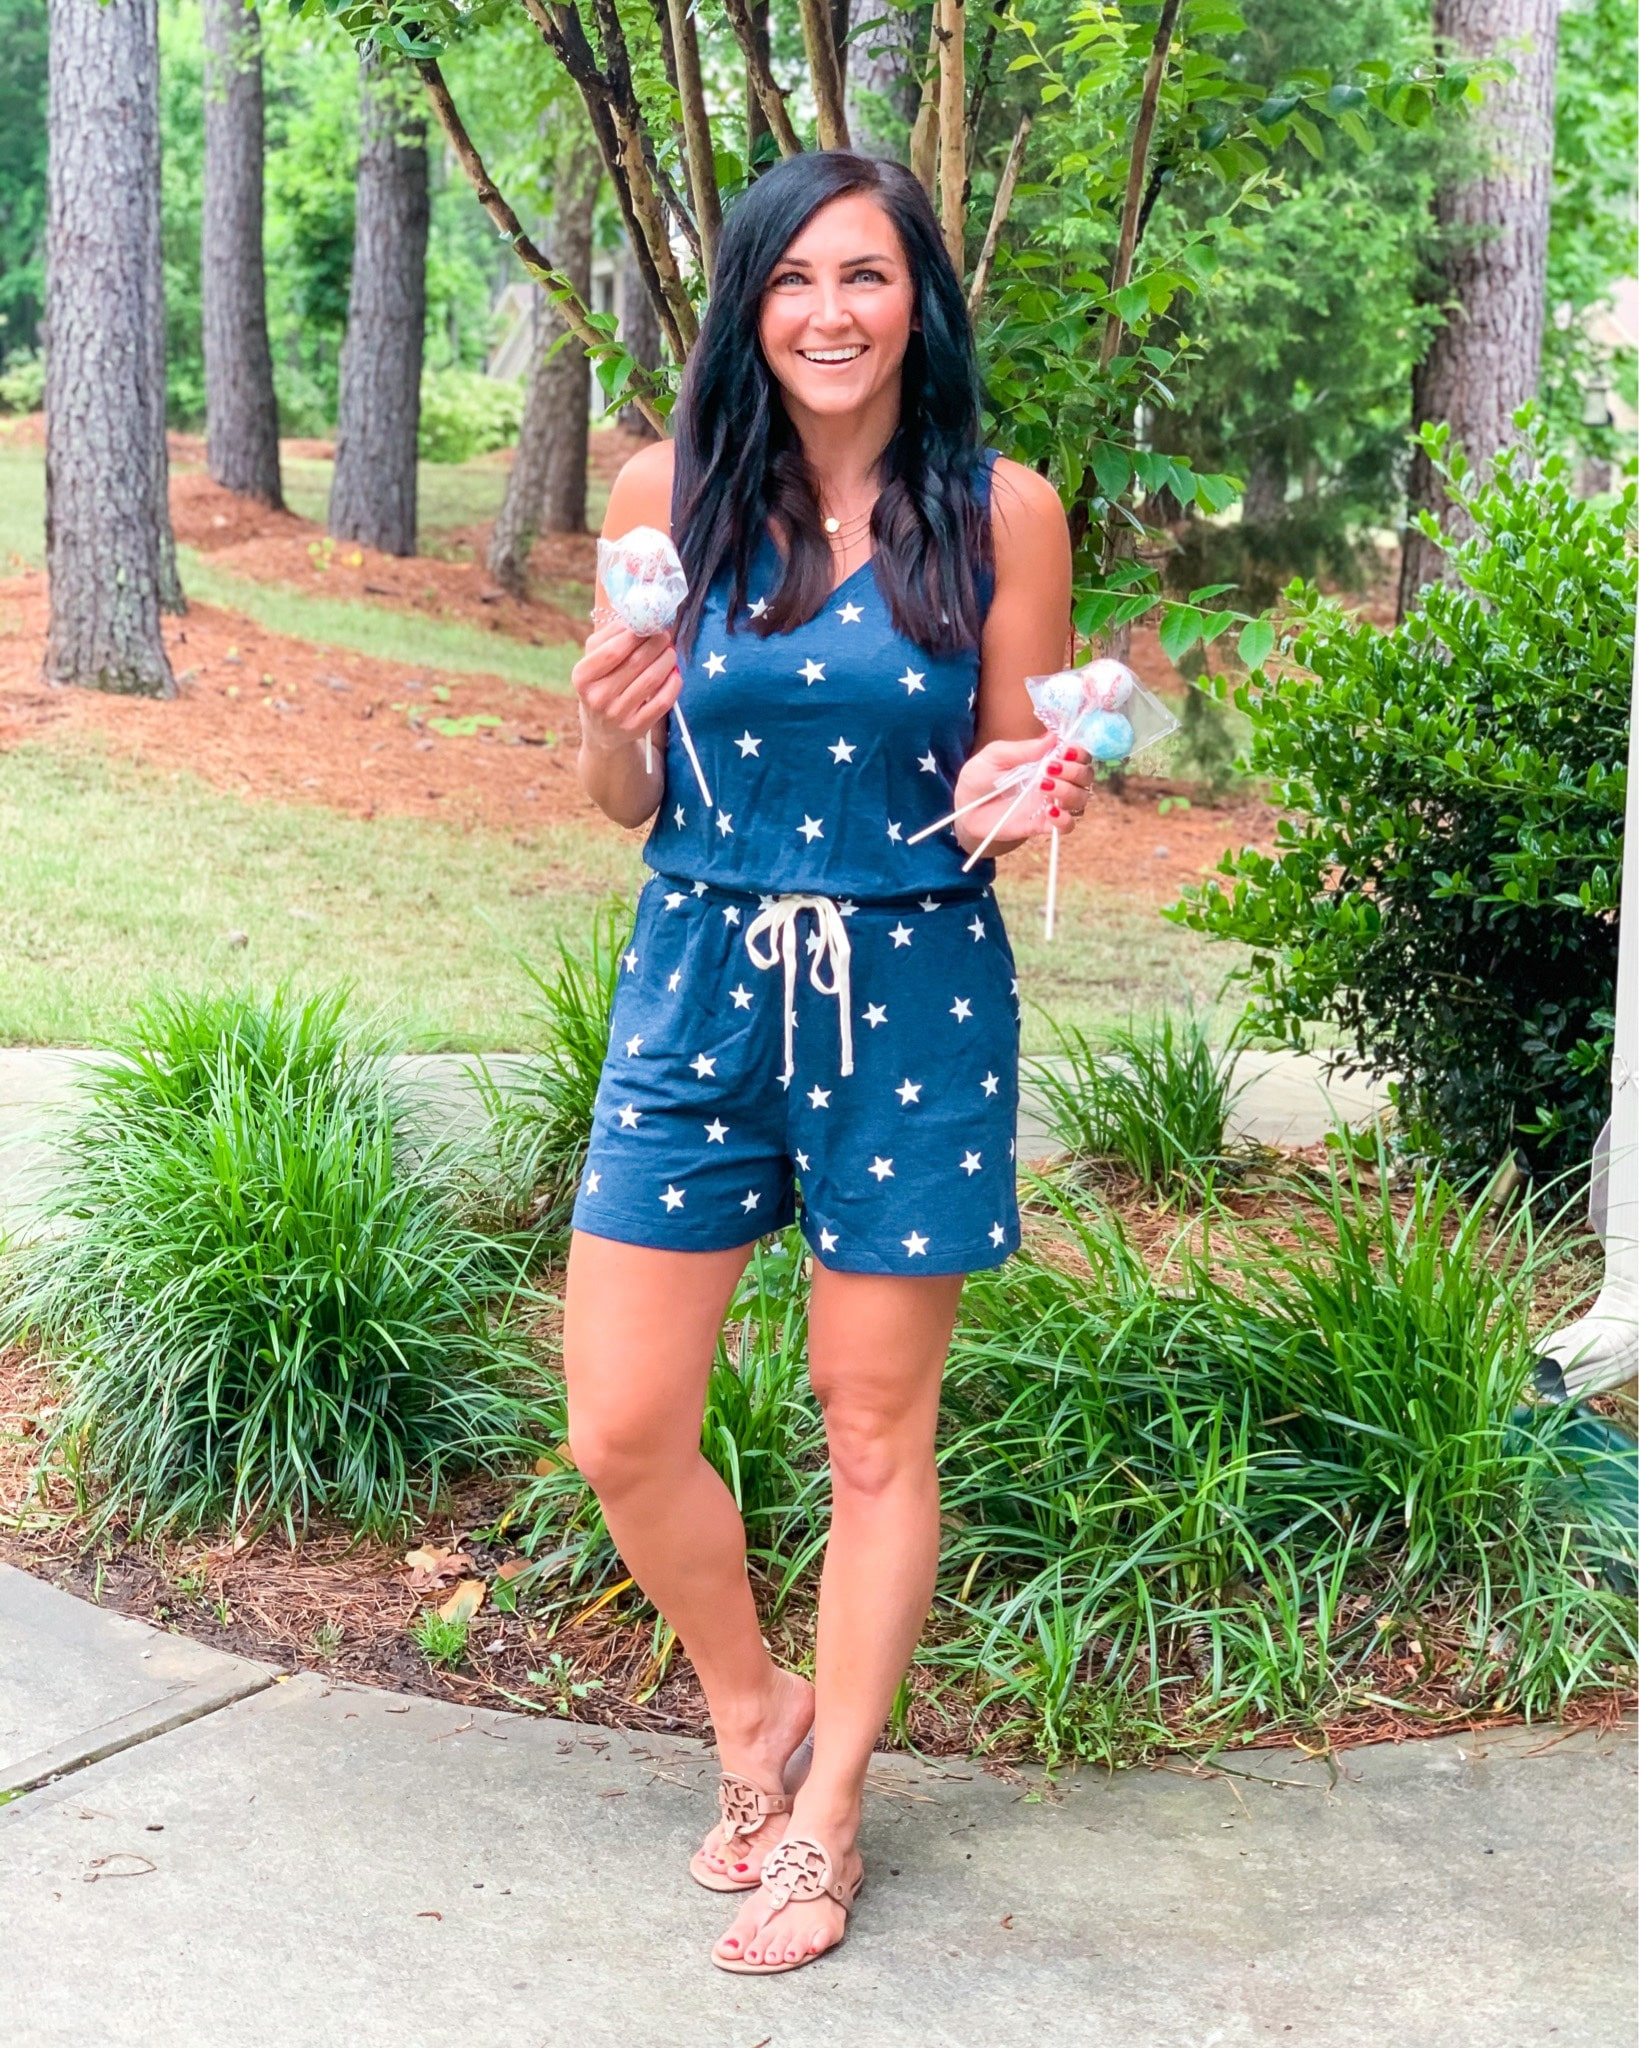 Star Romper, Memorial Day outfit, Patriotic clothing, Amazon Find